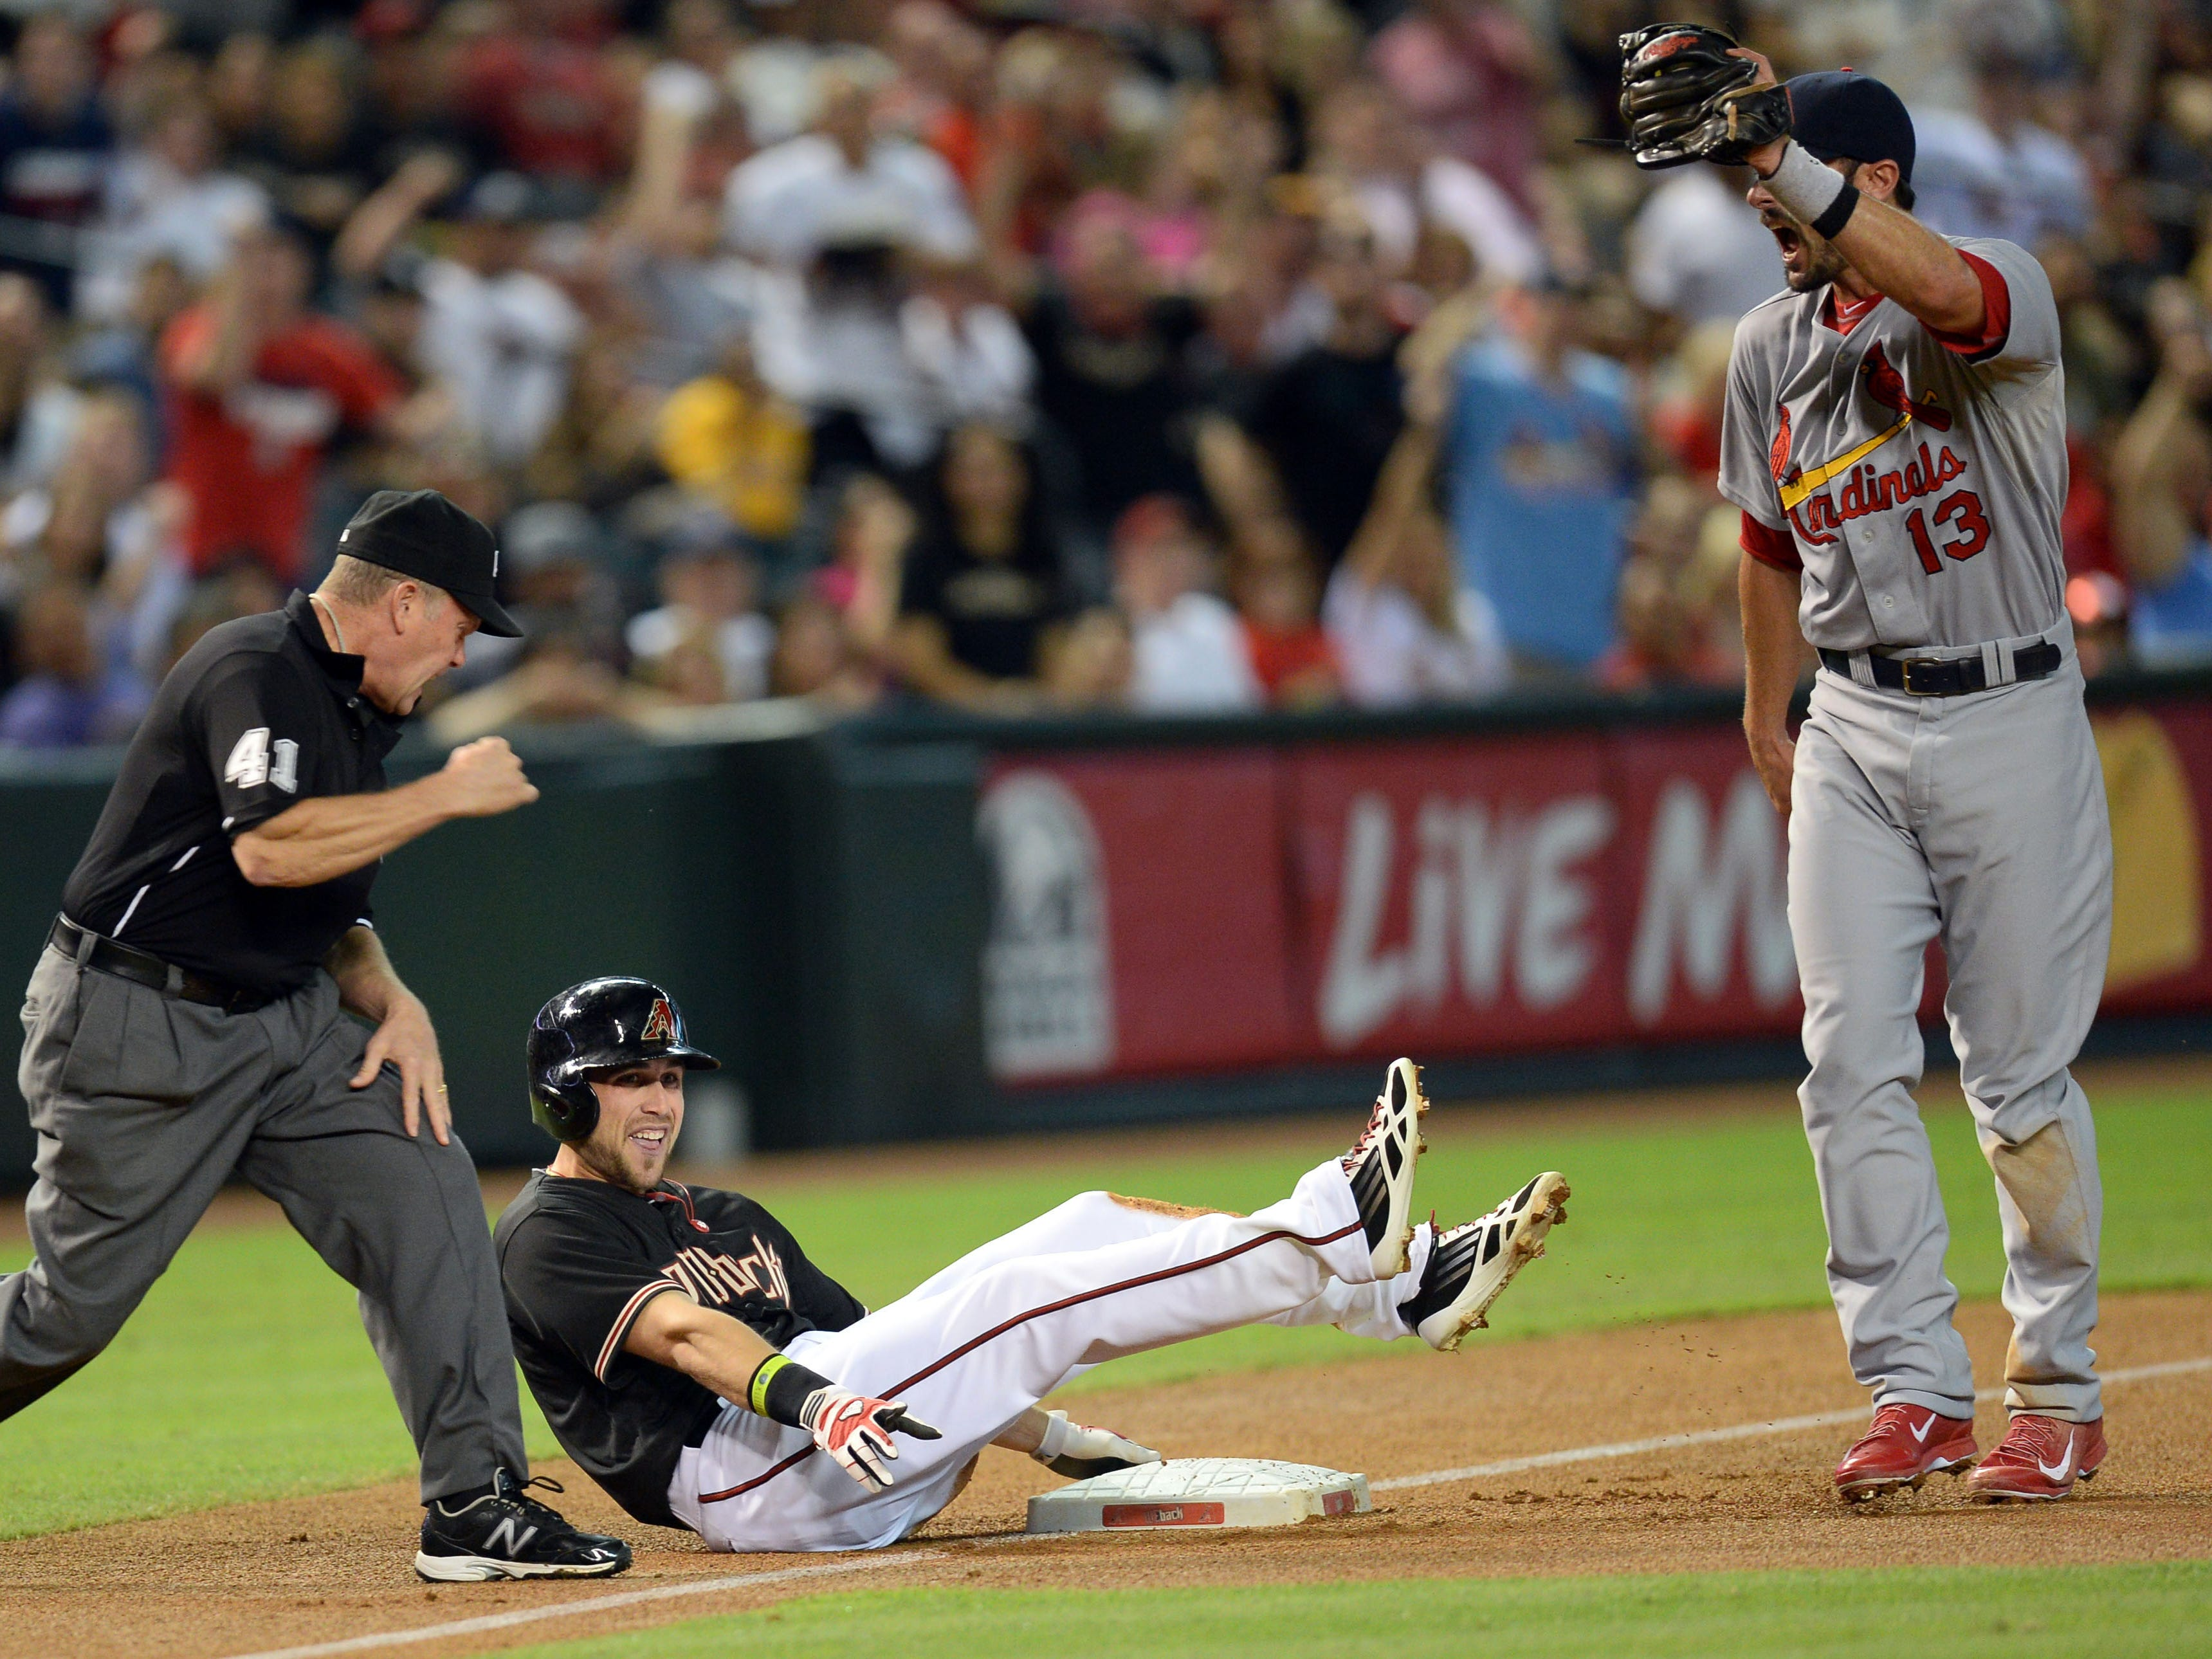 Sep 27, 2014; Phoenix, AZ, USA; Arizona Diamondbacks center fielder Ender Inciarte (5) is called out by third base umpire Jerry Meals (41) after being tagged out by St. Louis Cardinals third baseman Matt Carpenter (13) in the first inning at Chase Field. Mandatory Credit: Joe Camporeale-USA TODAY Sports